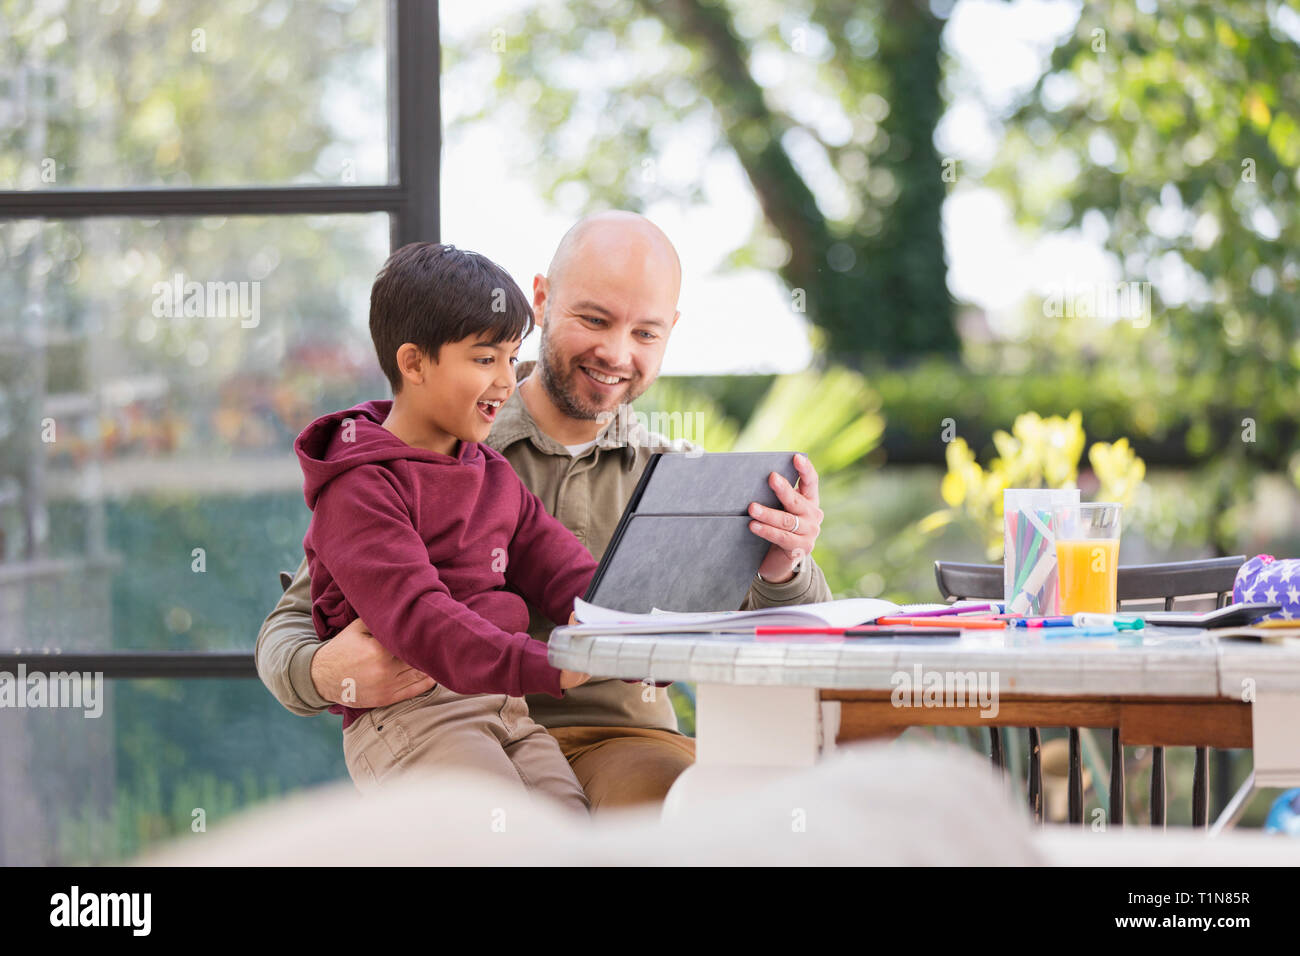 Father and son using digital tablet at table Stock Photo